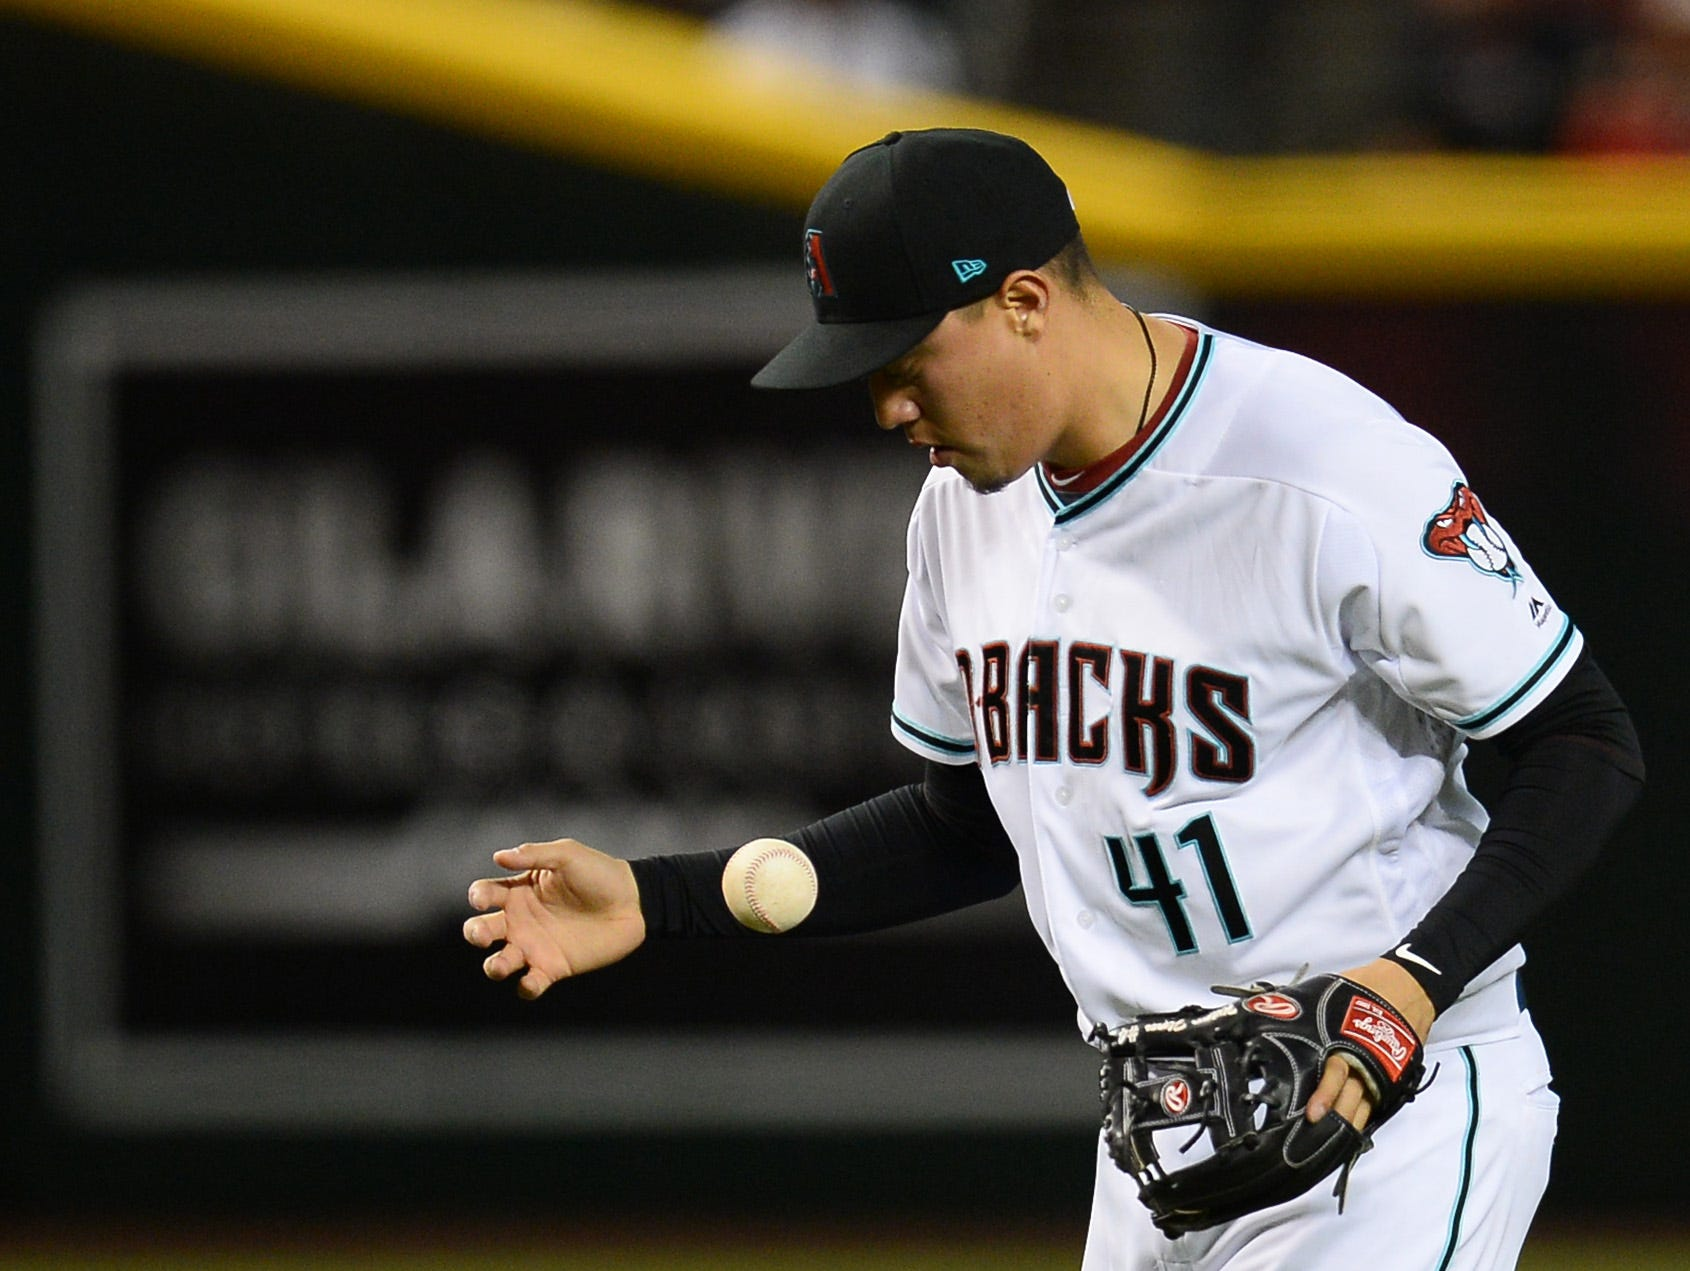 Apr 9, 2019; Phoenix, AZ, USA; Arizona Diamondbacks third baseman Wilmer Flores (41) reacts after misplaying a ground ball against the Texas Rangers during the second inning at Chase Field. Mandatory Credit: Joe Camporeale-USA TODAY Sports